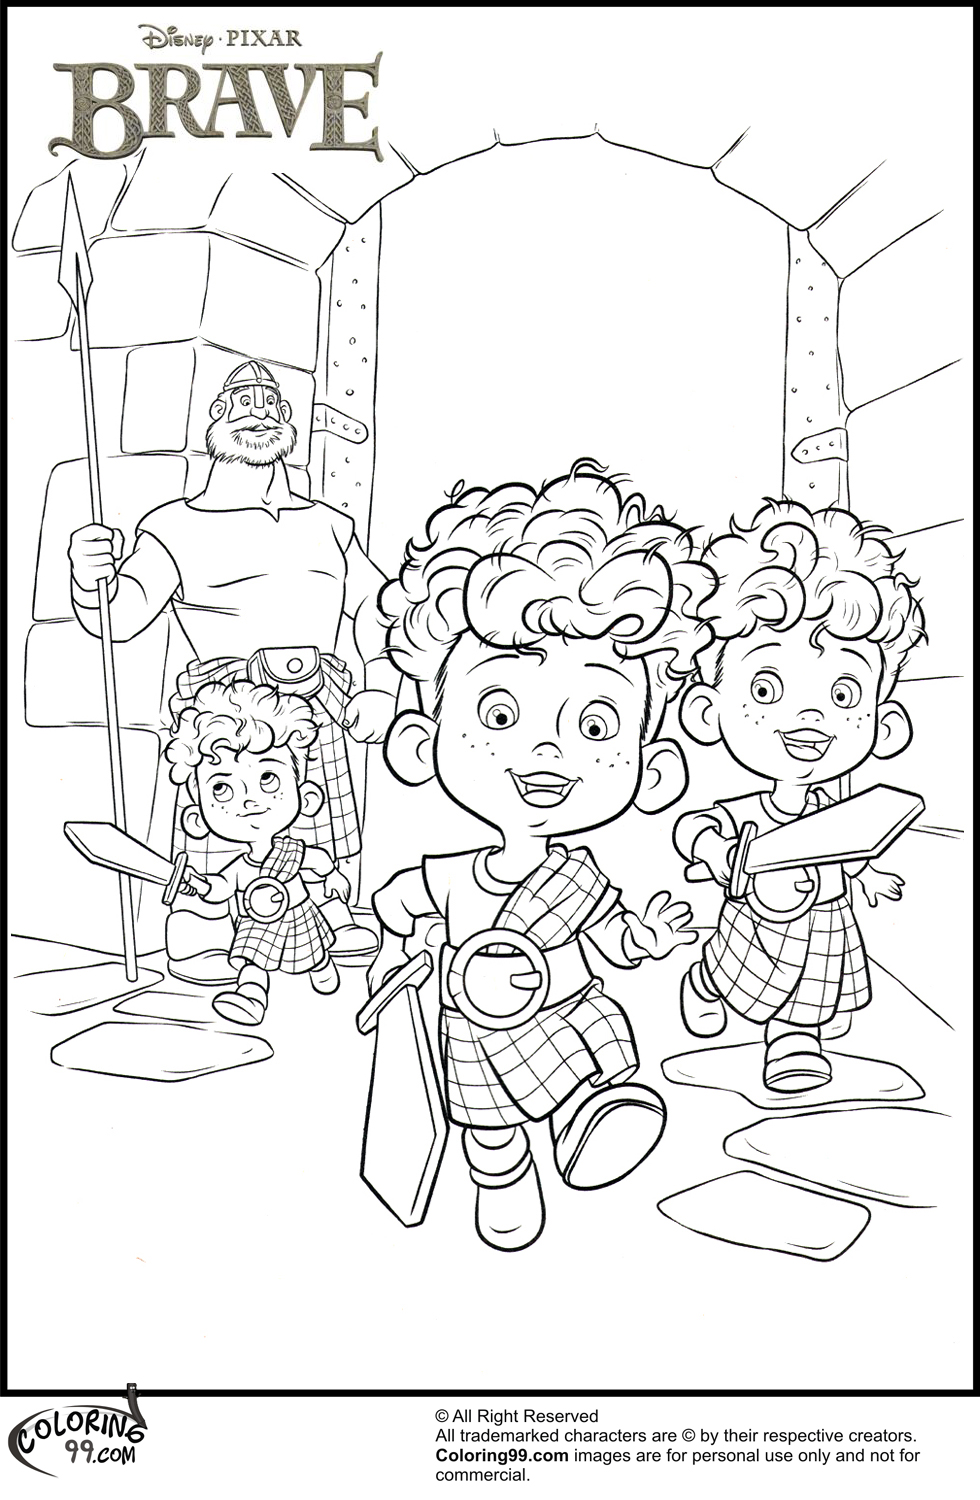 disney princess coloring pages brave - november 2013 team colors